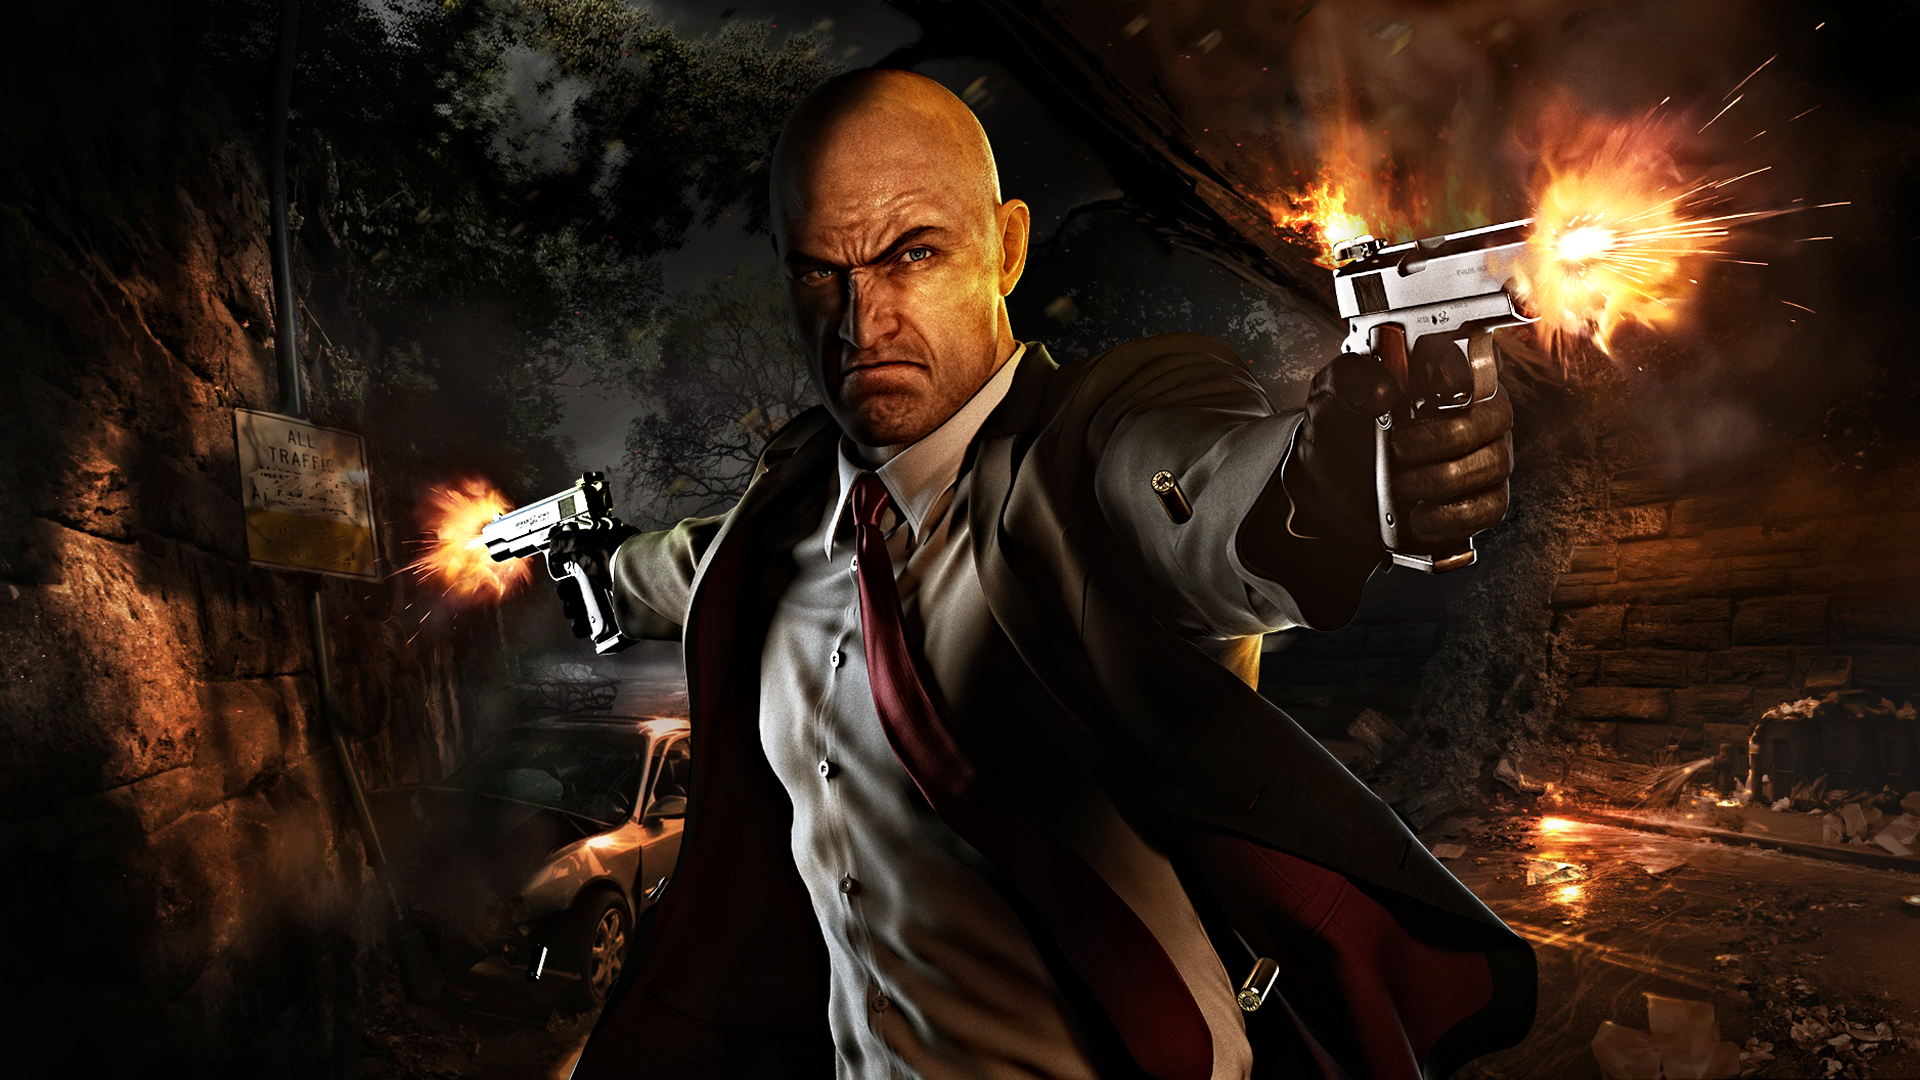 Hitman Absolution Wallpaper Widescreen Lti In 2020 Hitman Game